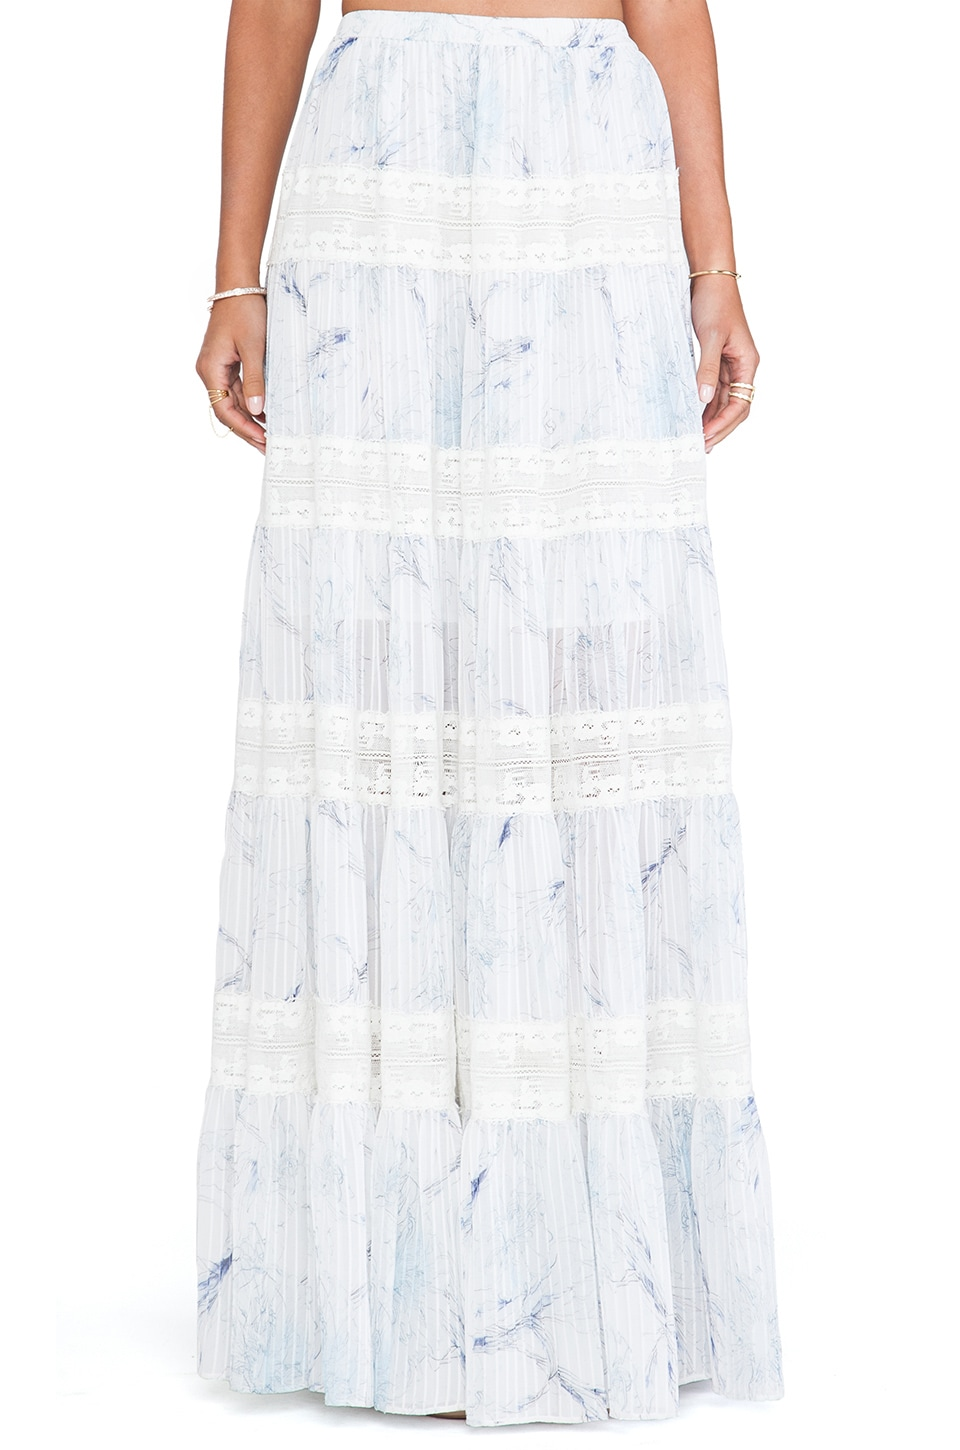 Marchesa Voyage Tiered Maxi Skirt in Day Lily Blue